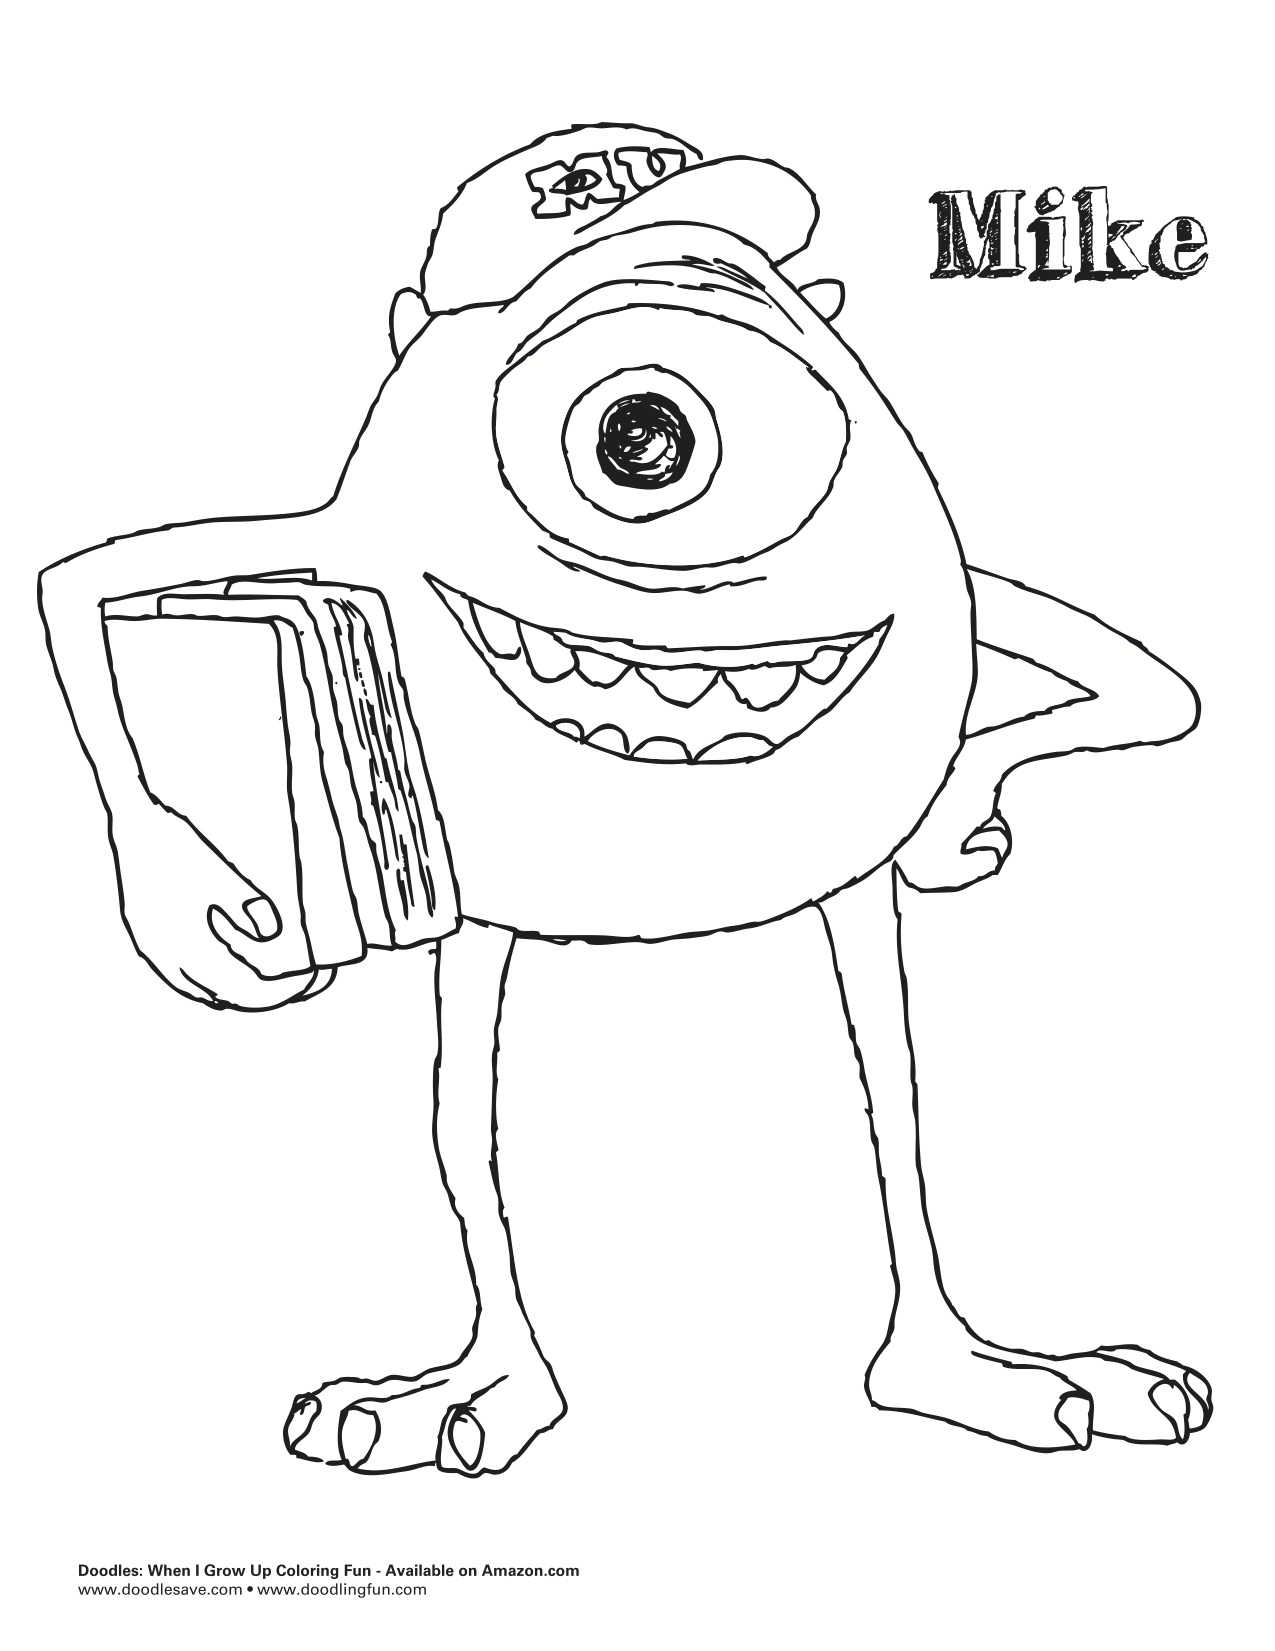 monsters university mike coloring pages - photo#4